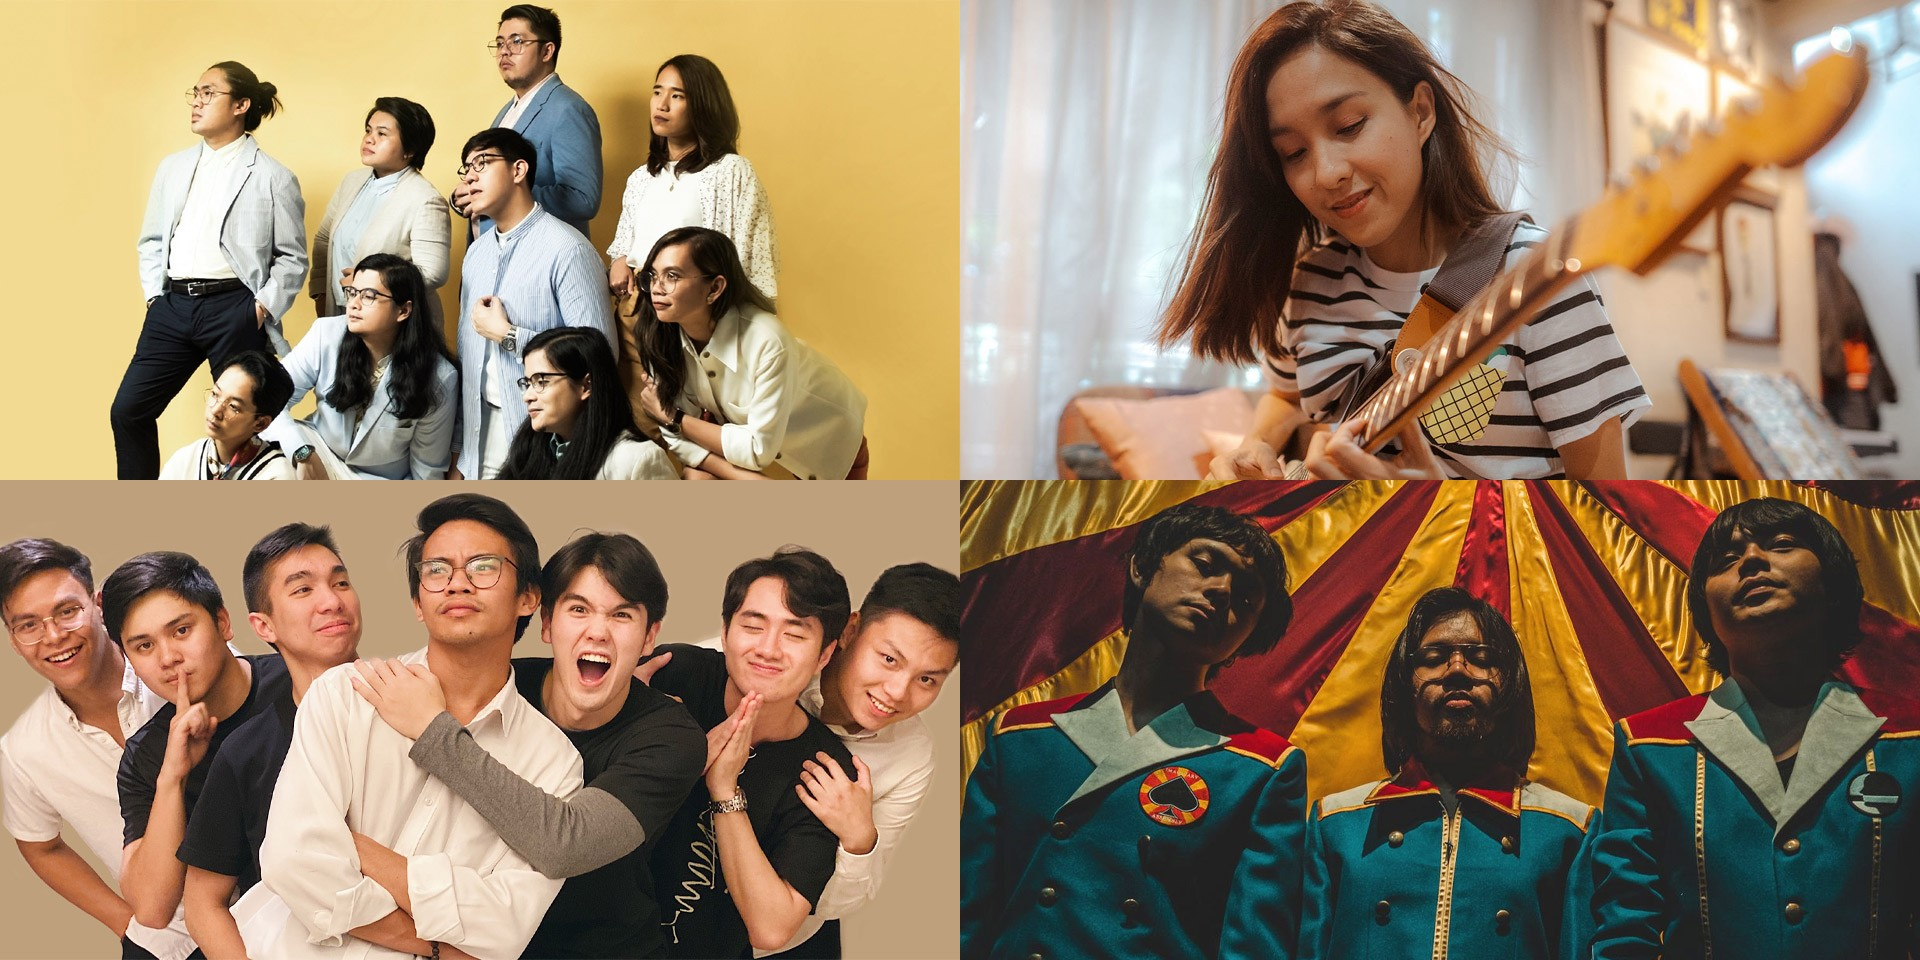 Ben&Ben, IV of Spades, Lola Amour, Barbie Almalbis, and more nominated at the 33rd Awit Awards